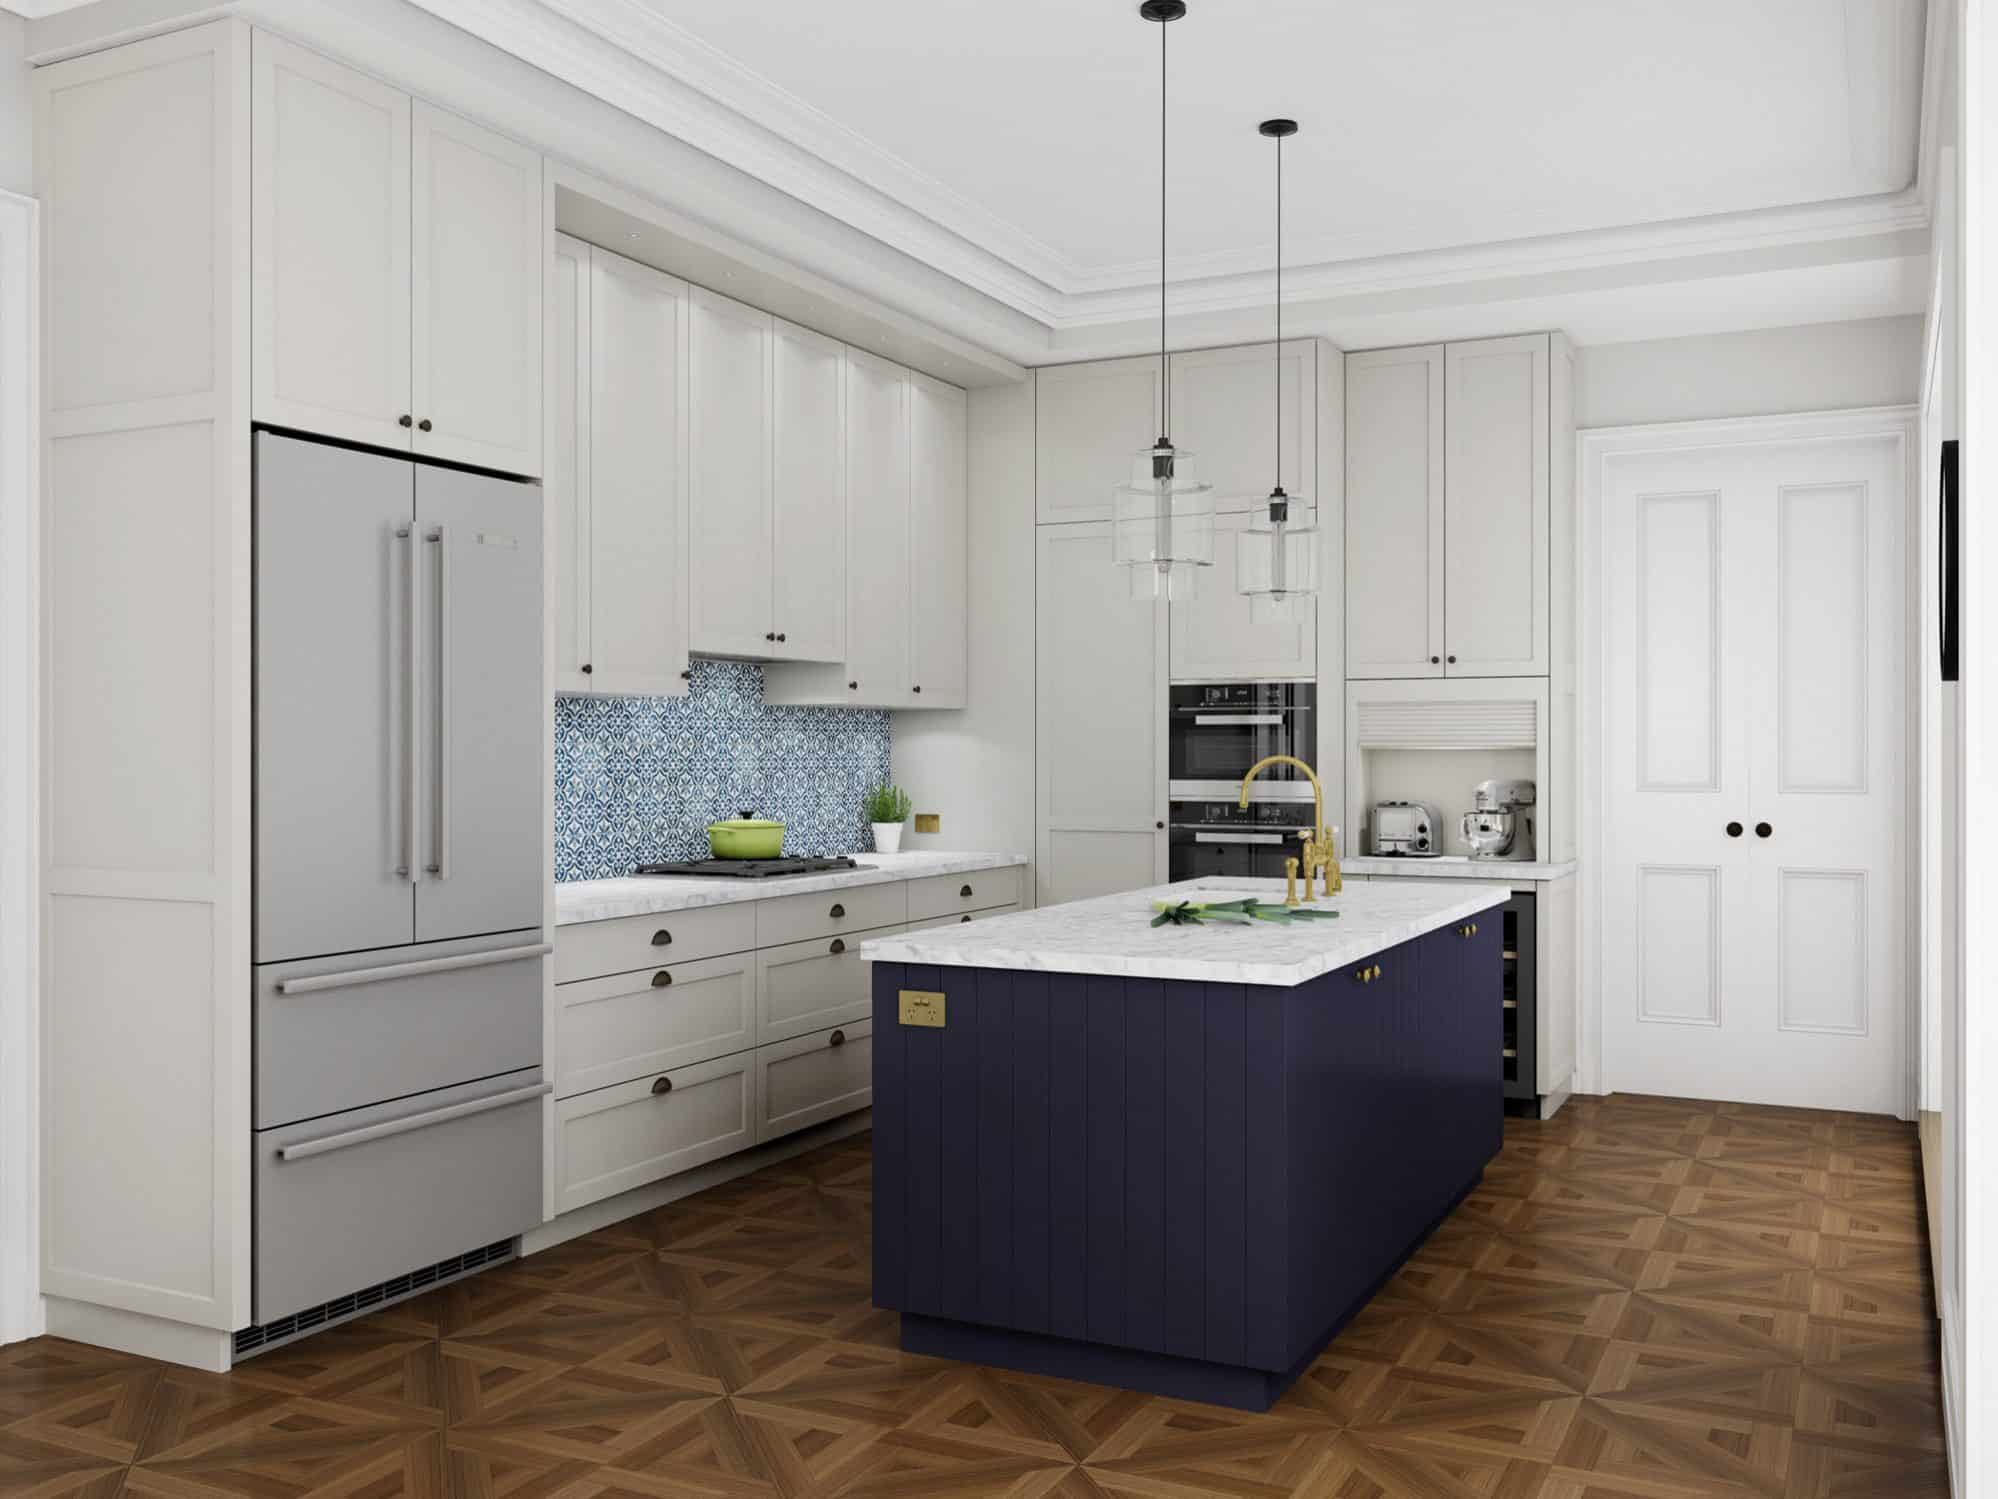 Transitional kitchen with dark blue island and eclectic finishes